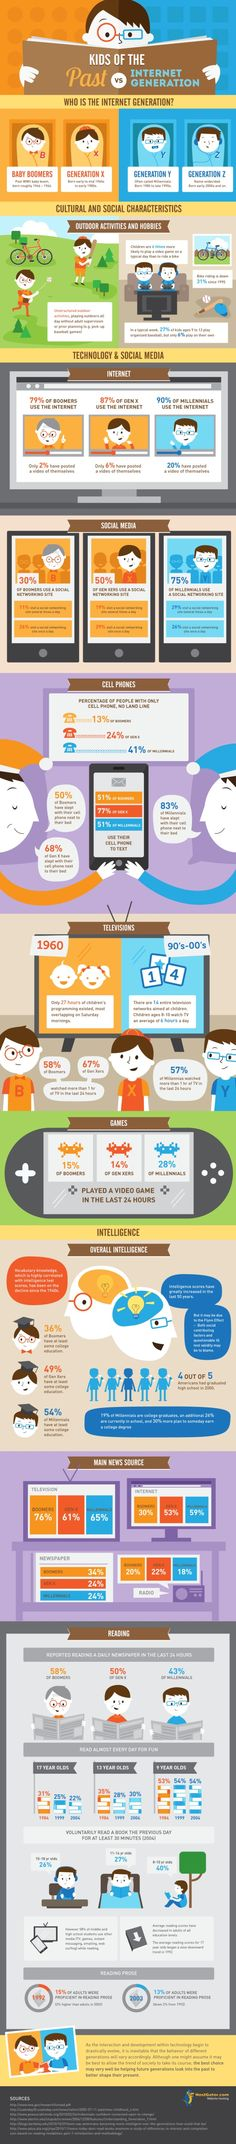 How 3 Different Generations Use The #Internet -  #social  #mobile